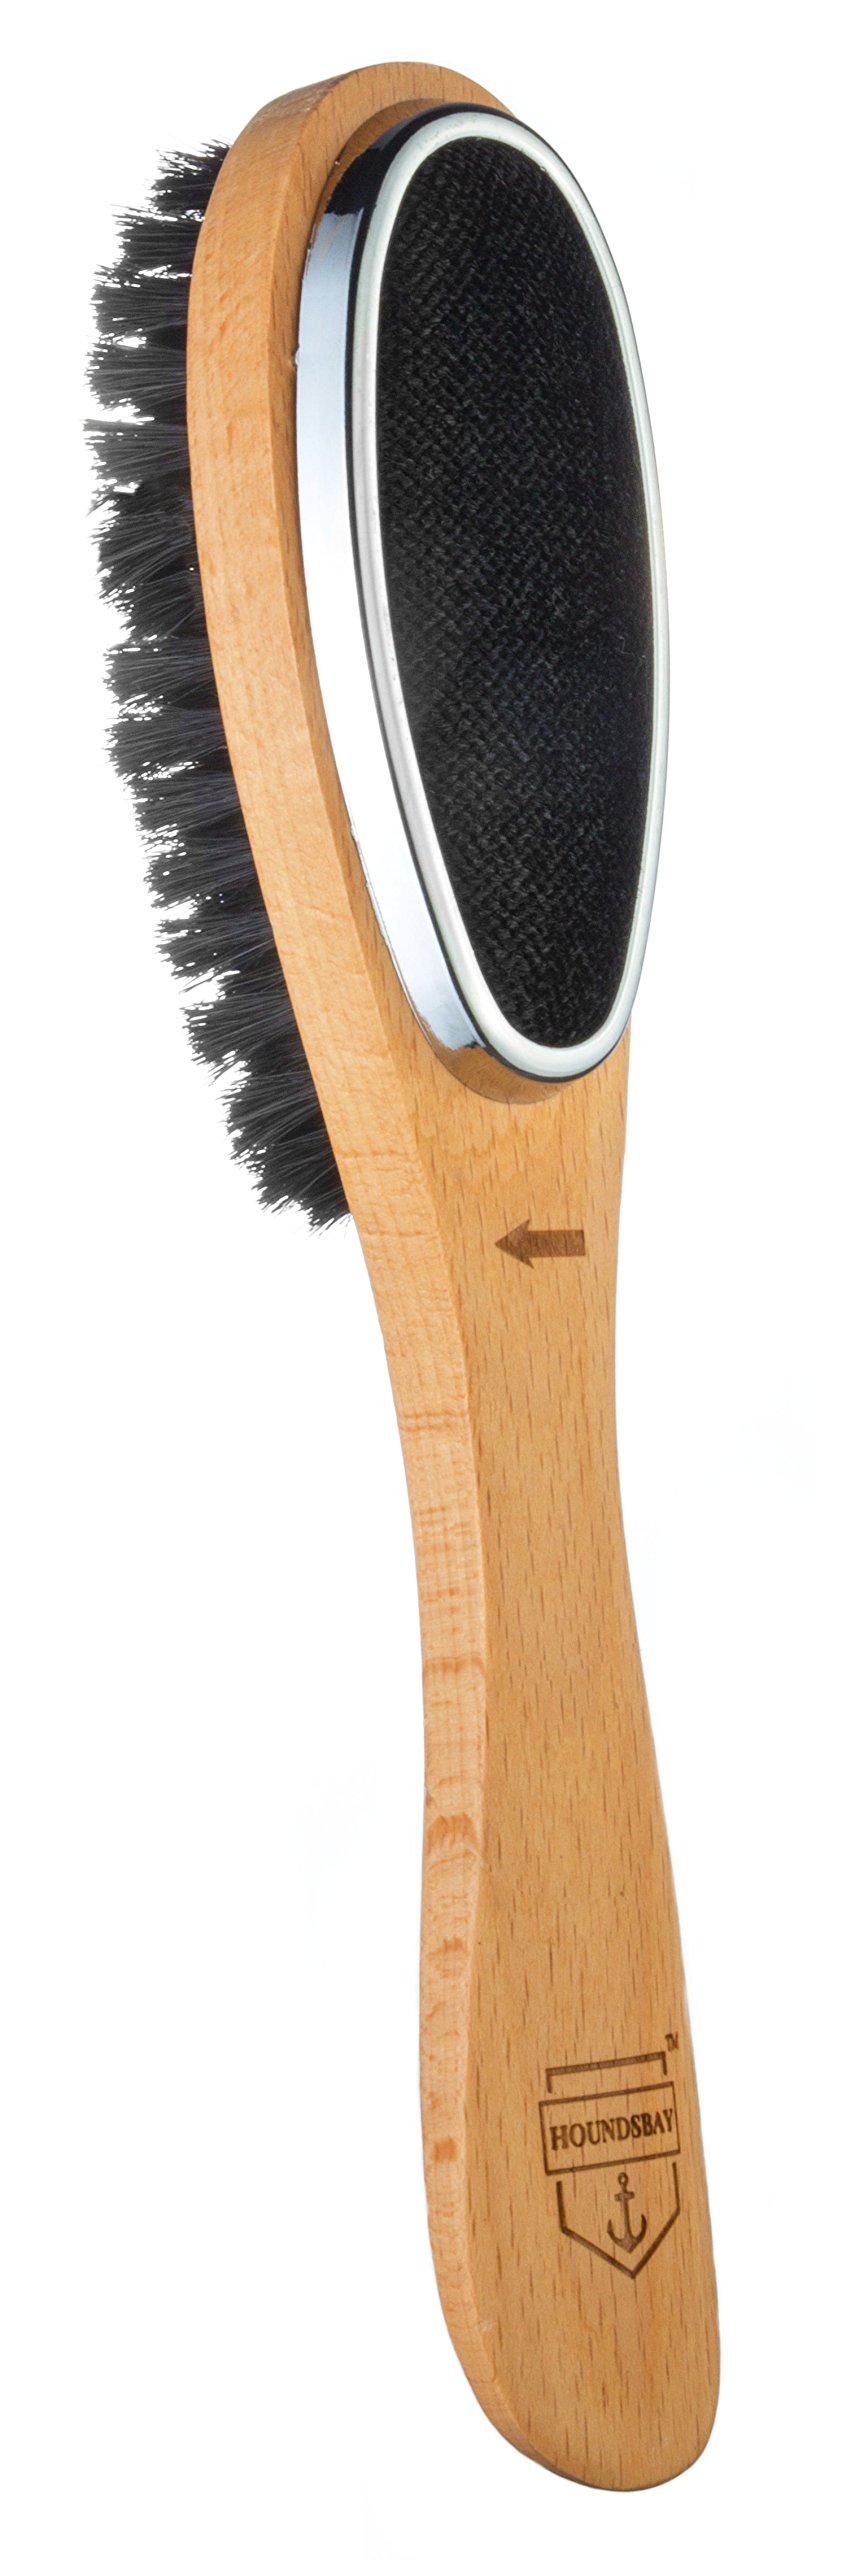 HOUNDSBAY Esquire 3 in 1 Lint Remover & Garment Care Suit Brush for Clothes with Shoe Horn Handle   Removes Hair & Pet Fur (Natural Wood)